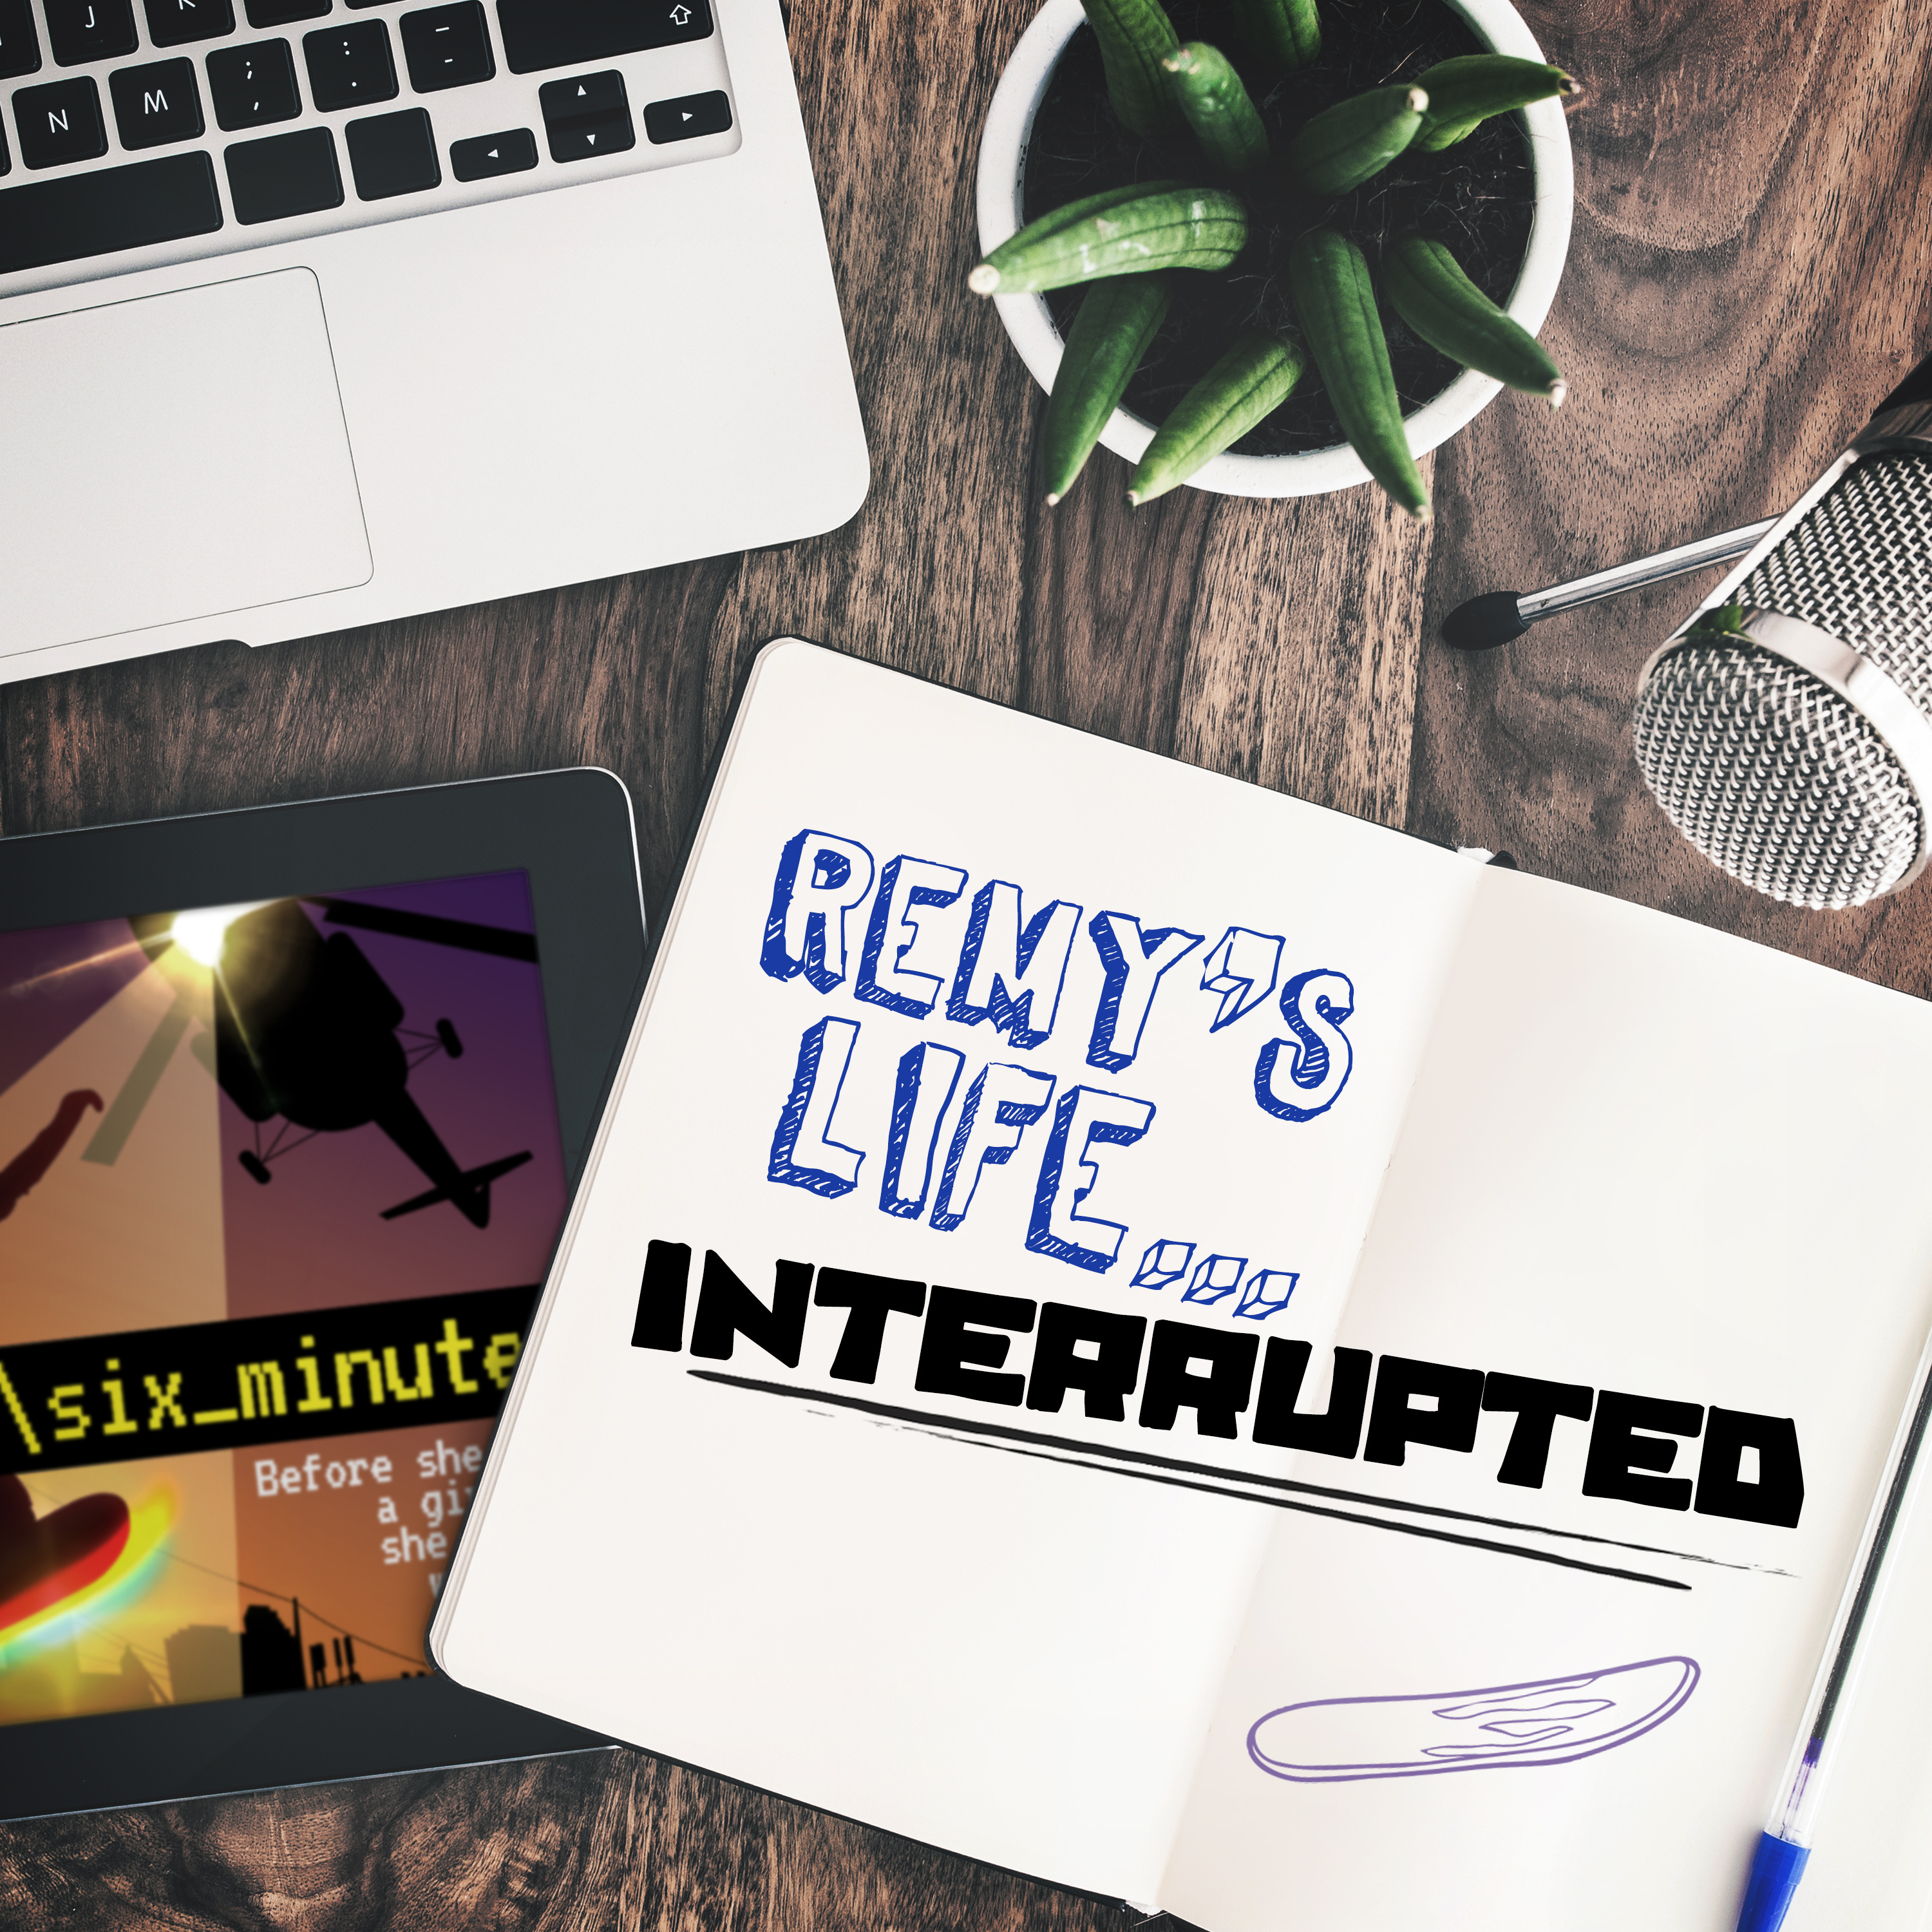 Remy's Life Interrupted: EP85